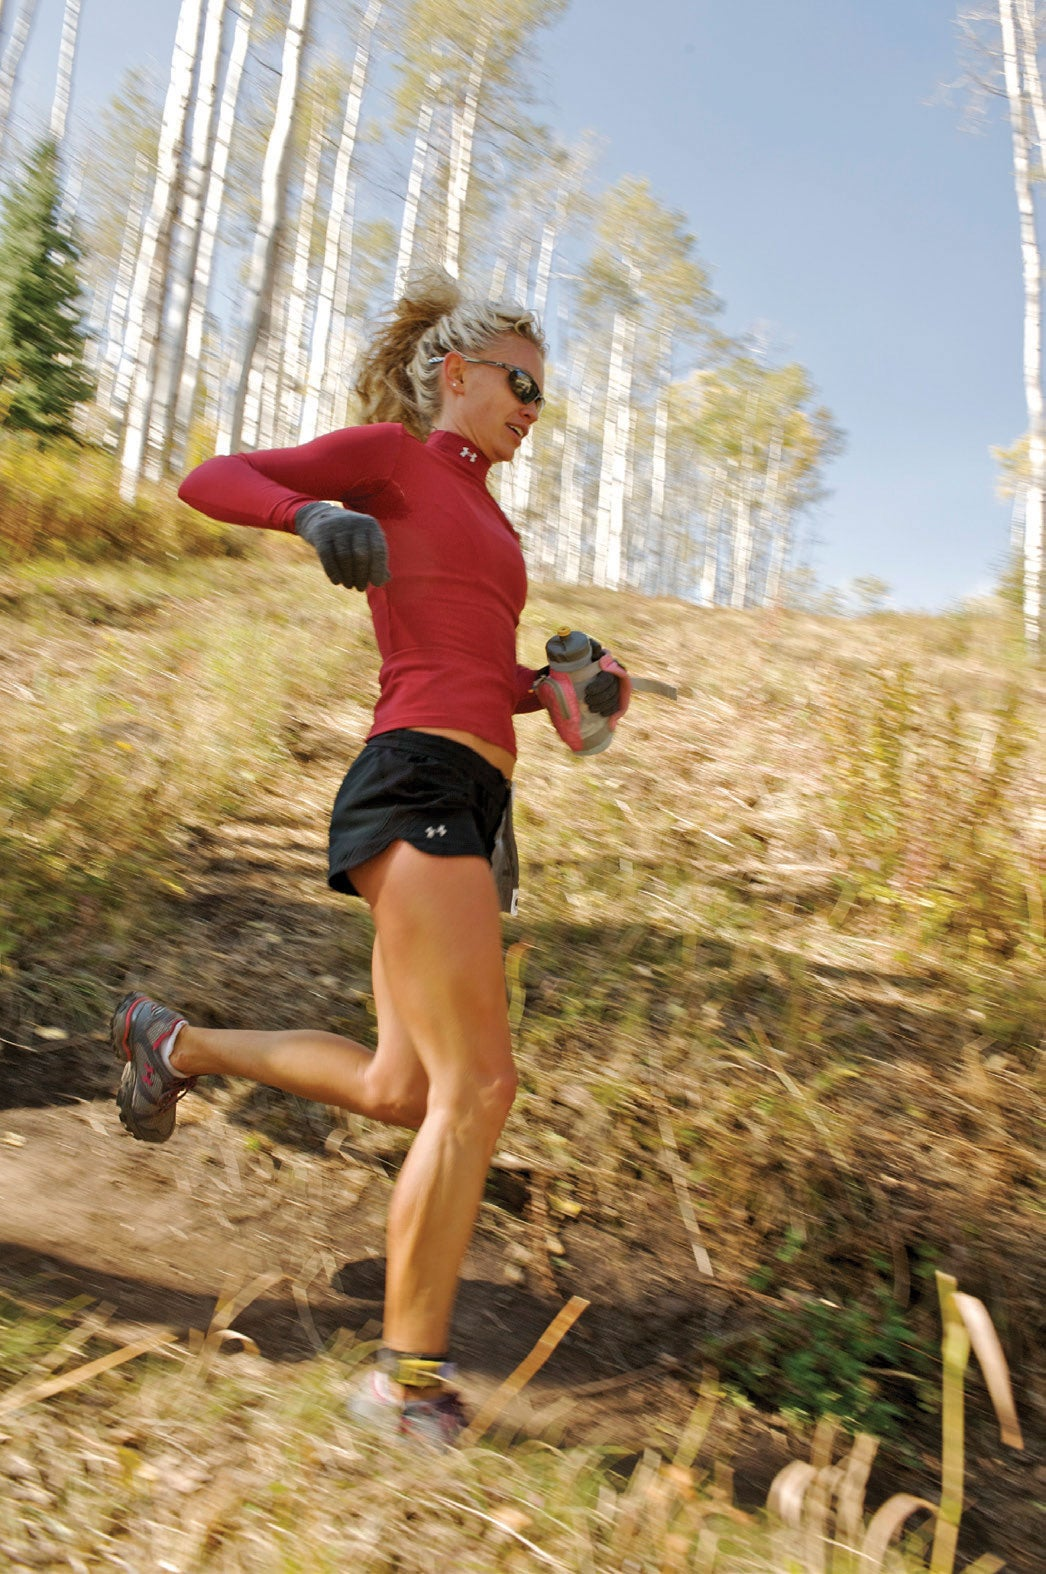 After miles of hills, the flat finish may feel like the hardest part.